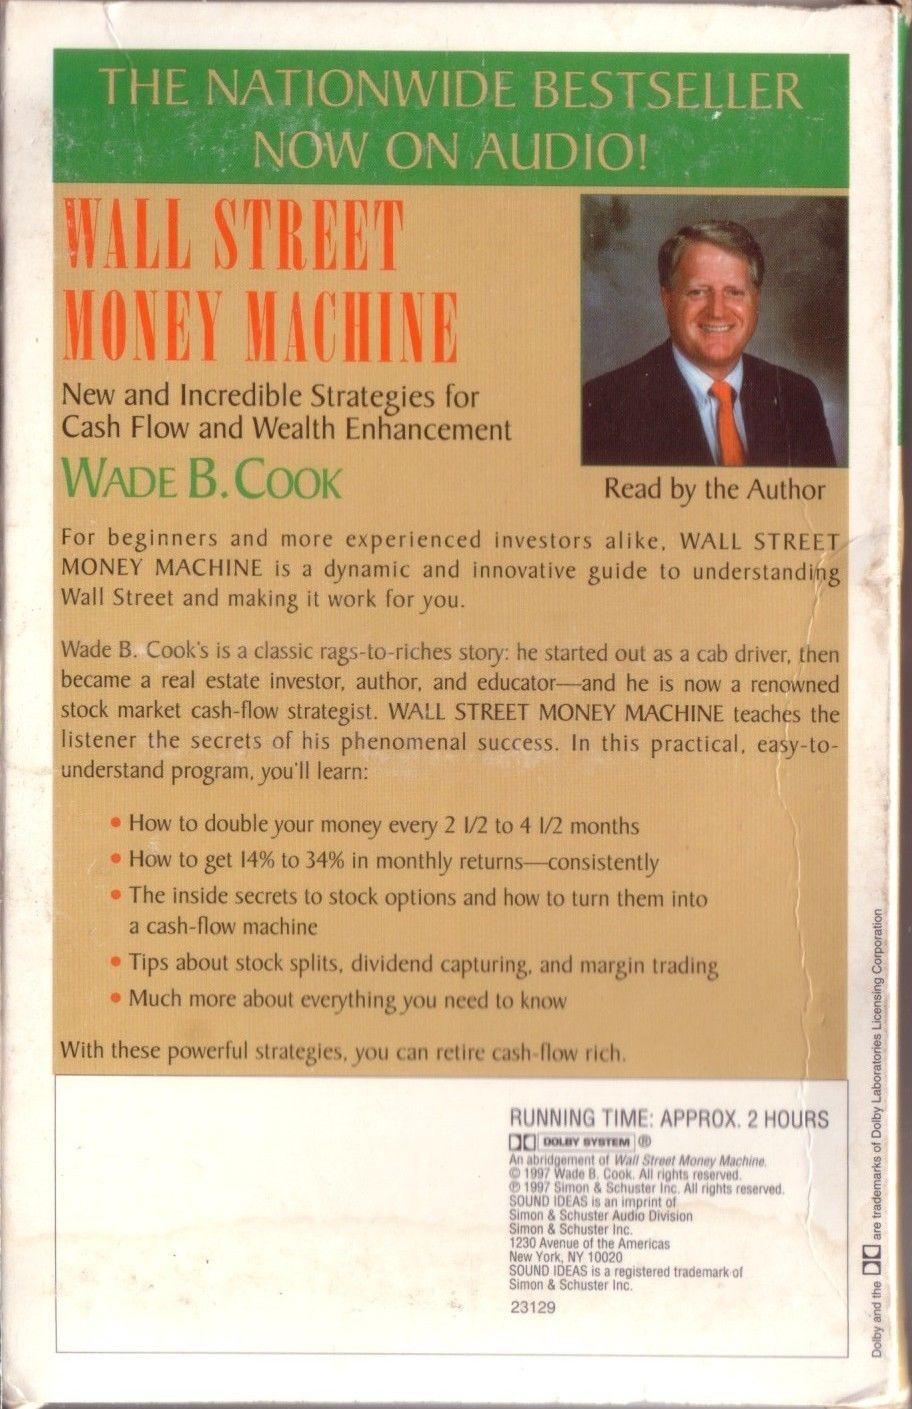 Wall Street Money Machine Cassettes W. Cook Incredible Strategies for Cash Flow